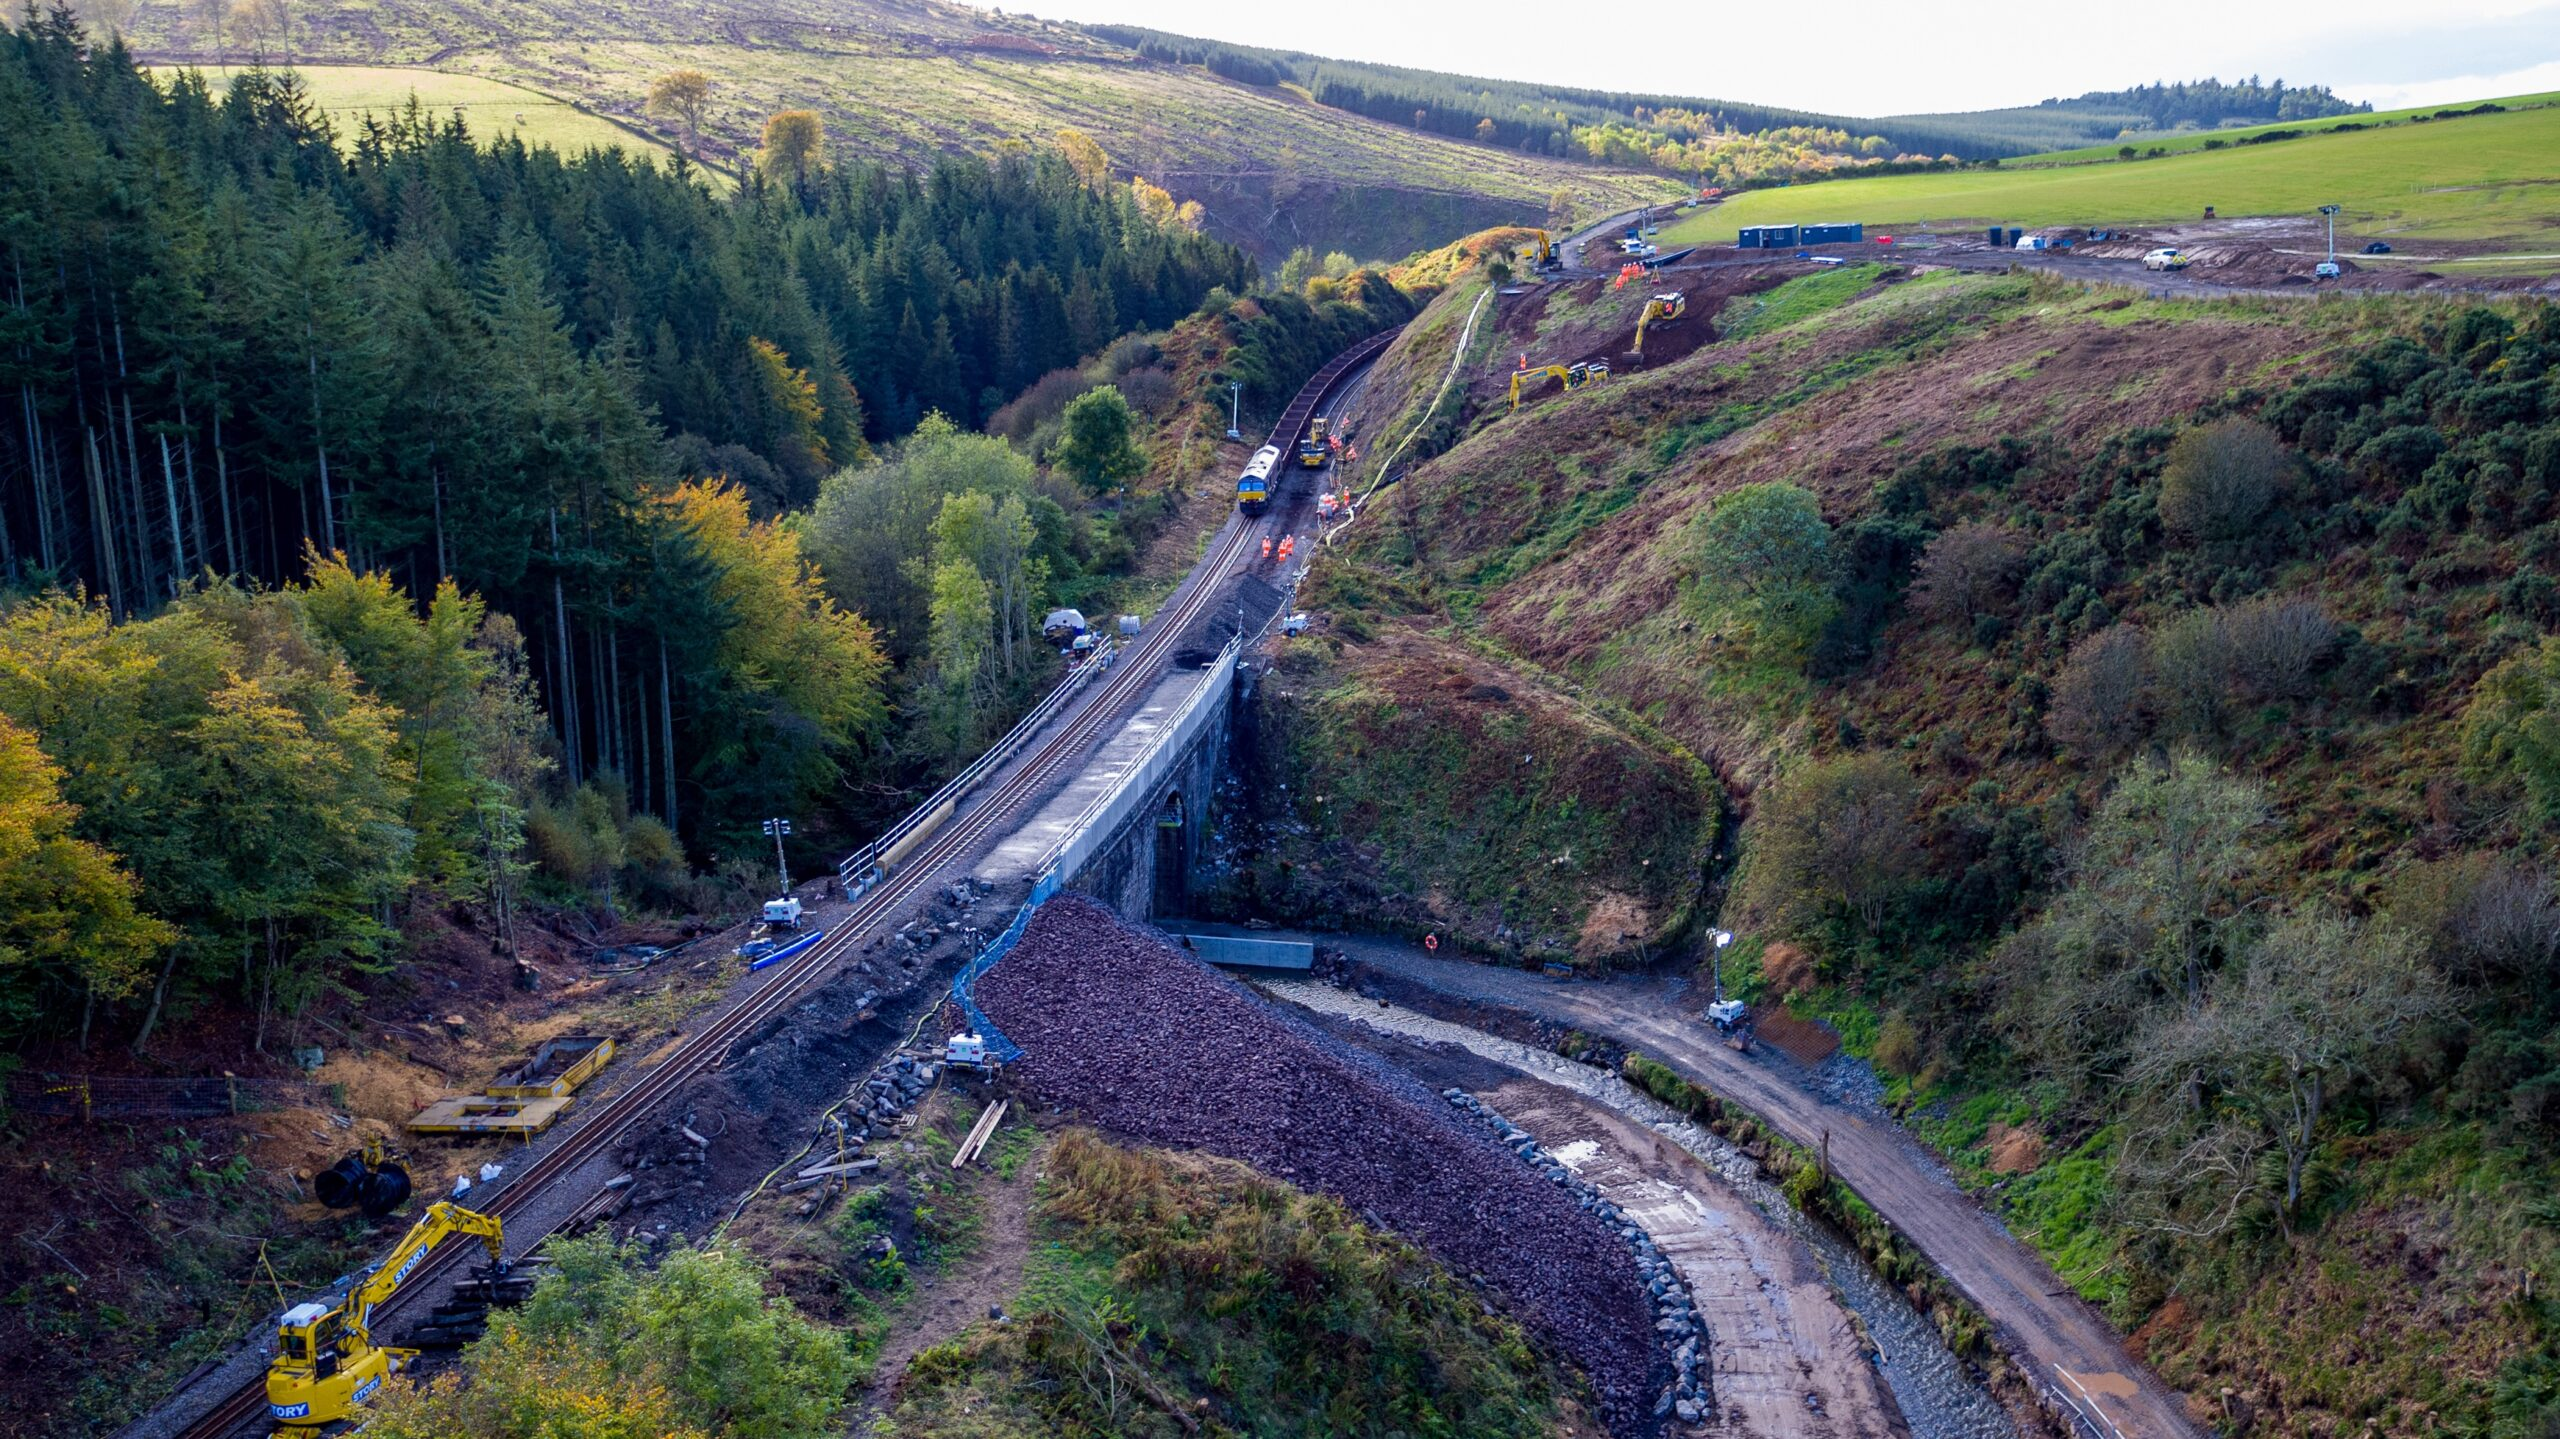 Network Rail begins track repair works at Stonehaven, with the wreckage cleared